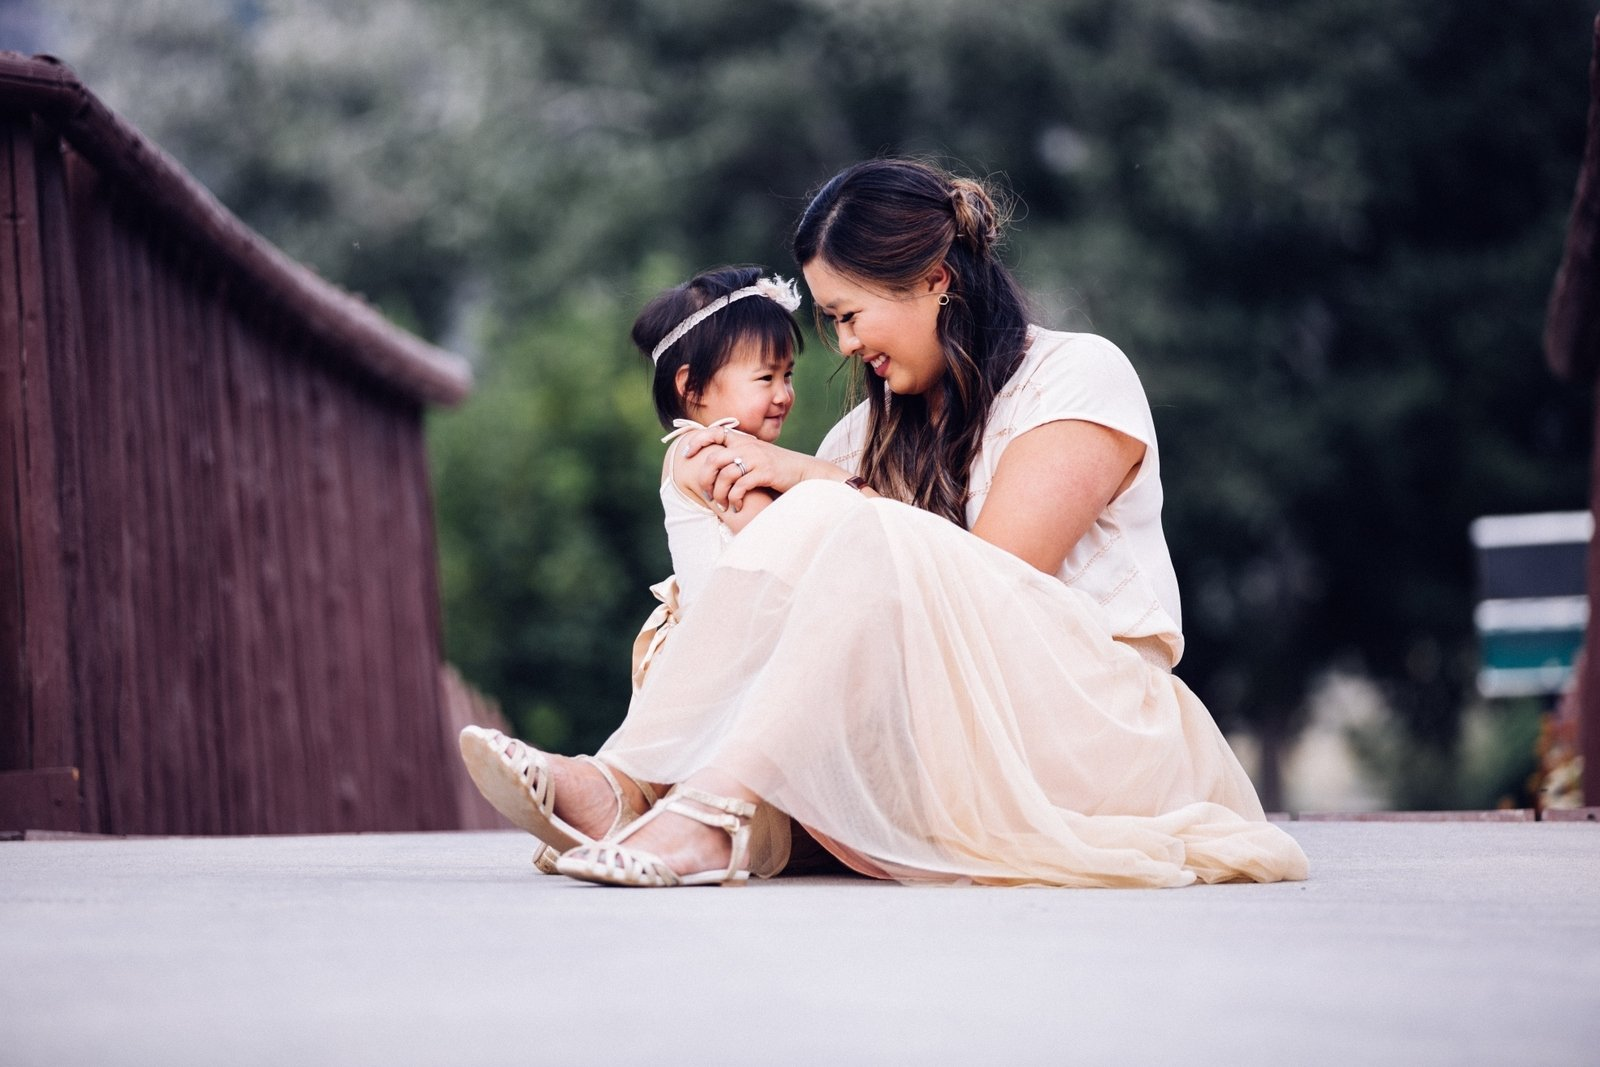 10 Spectacular Mother And Daughter Picture Ideas 8 mother daughter date ideas linkup sandyalamode 2020